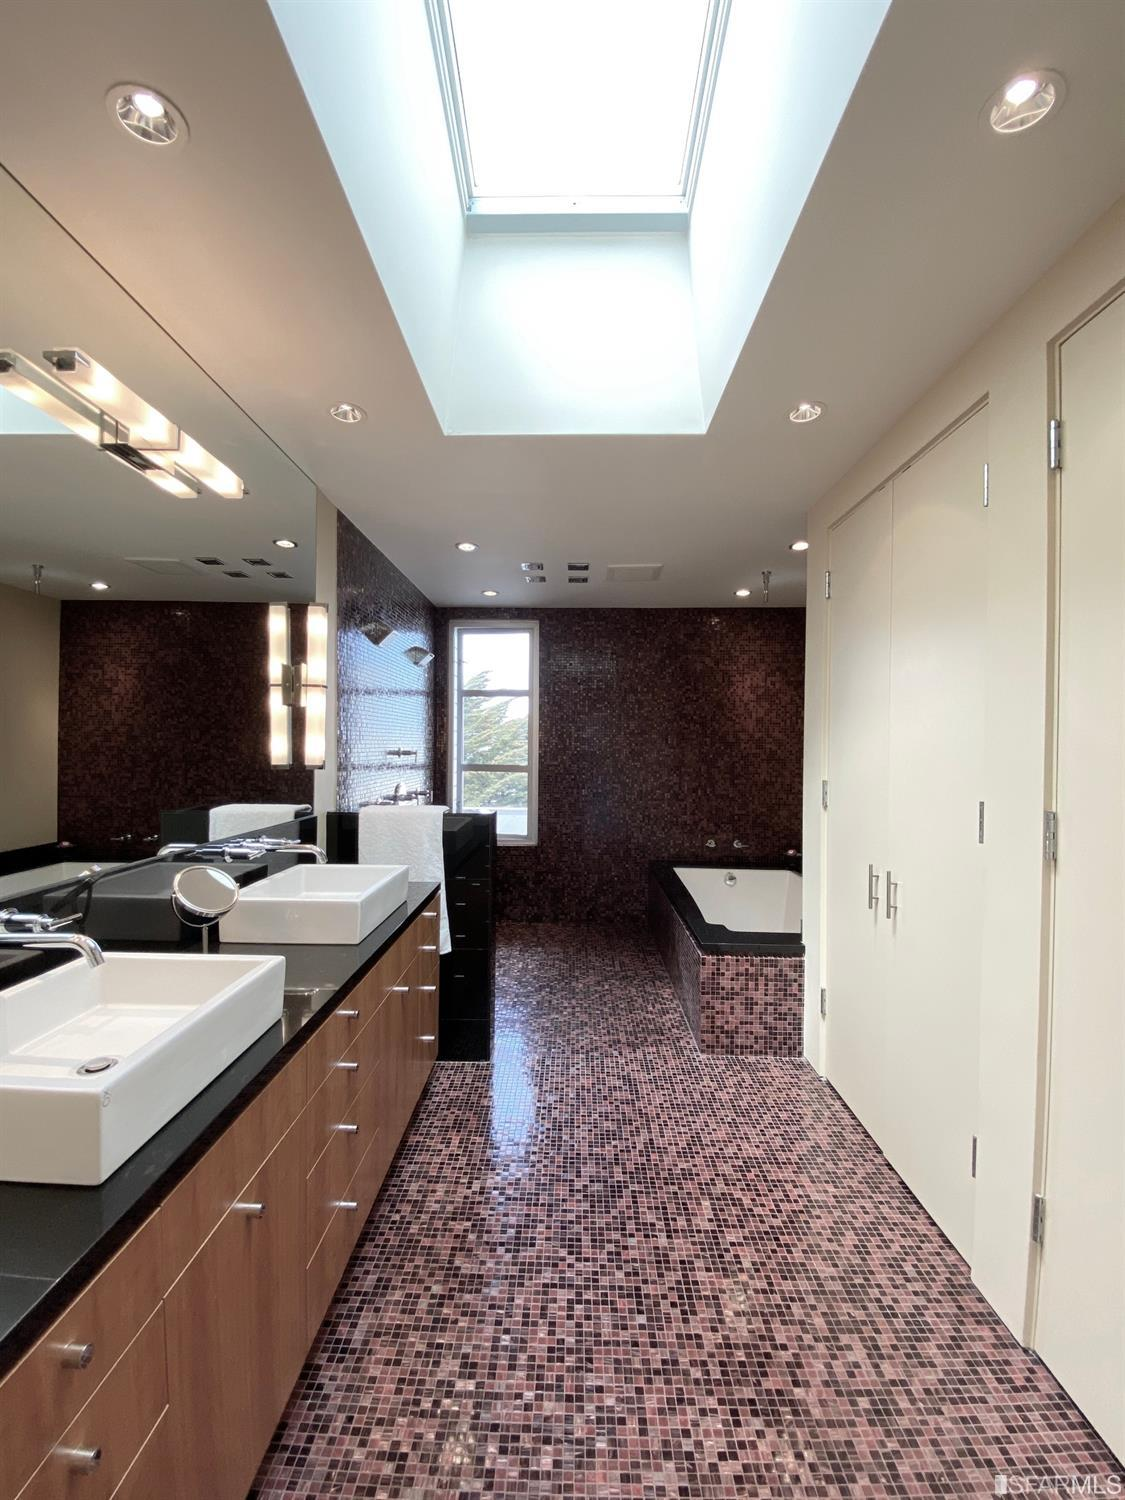 Master bath with double sinks and granite counters, large shower, and soaking tub and large skylight. Adjacent to the bathroom i